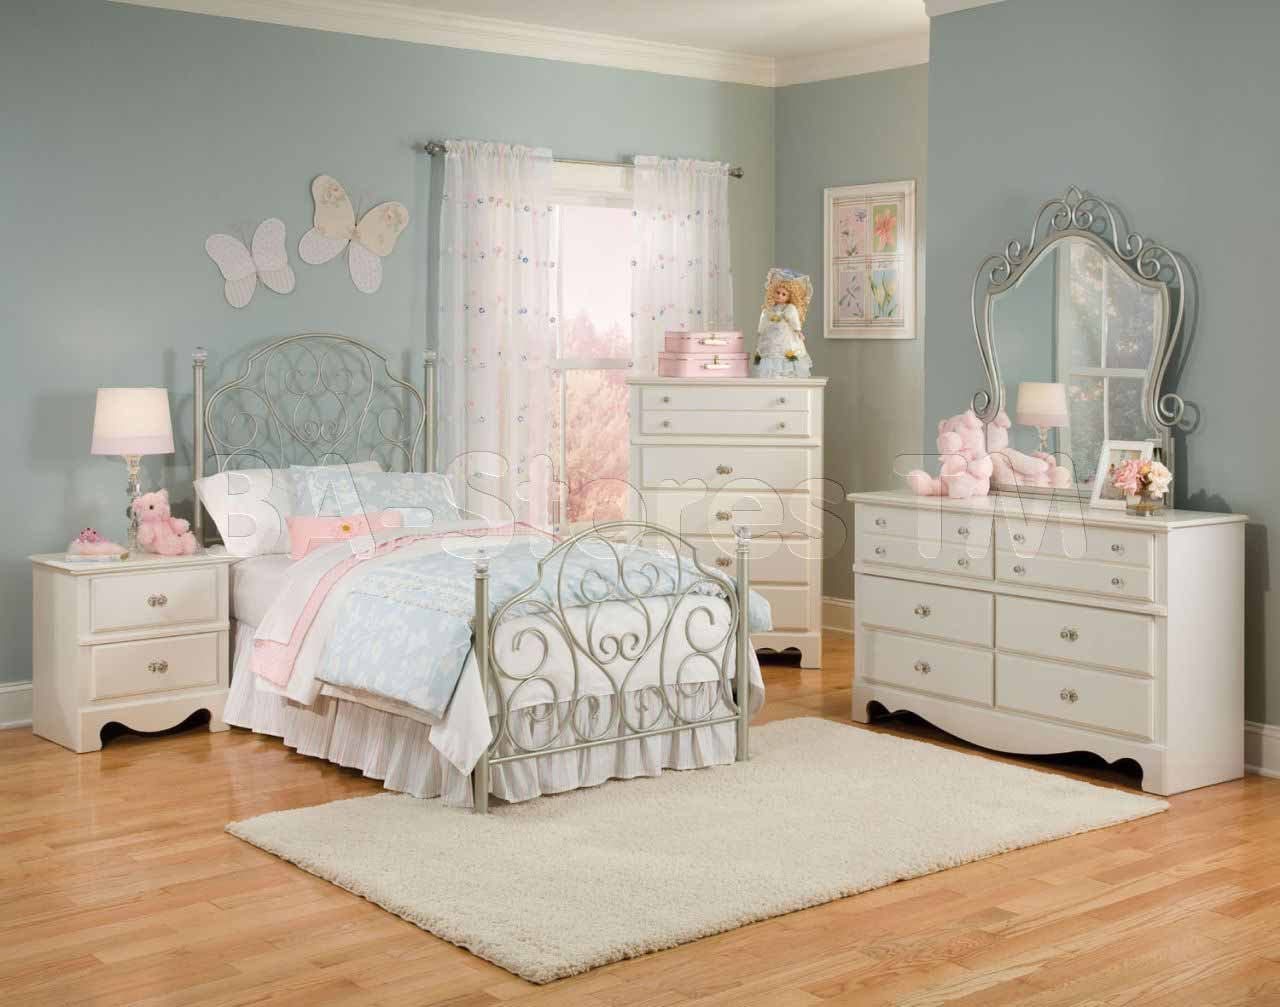 Kids Bedroom Wallpapers Hd Wallpapers Pics